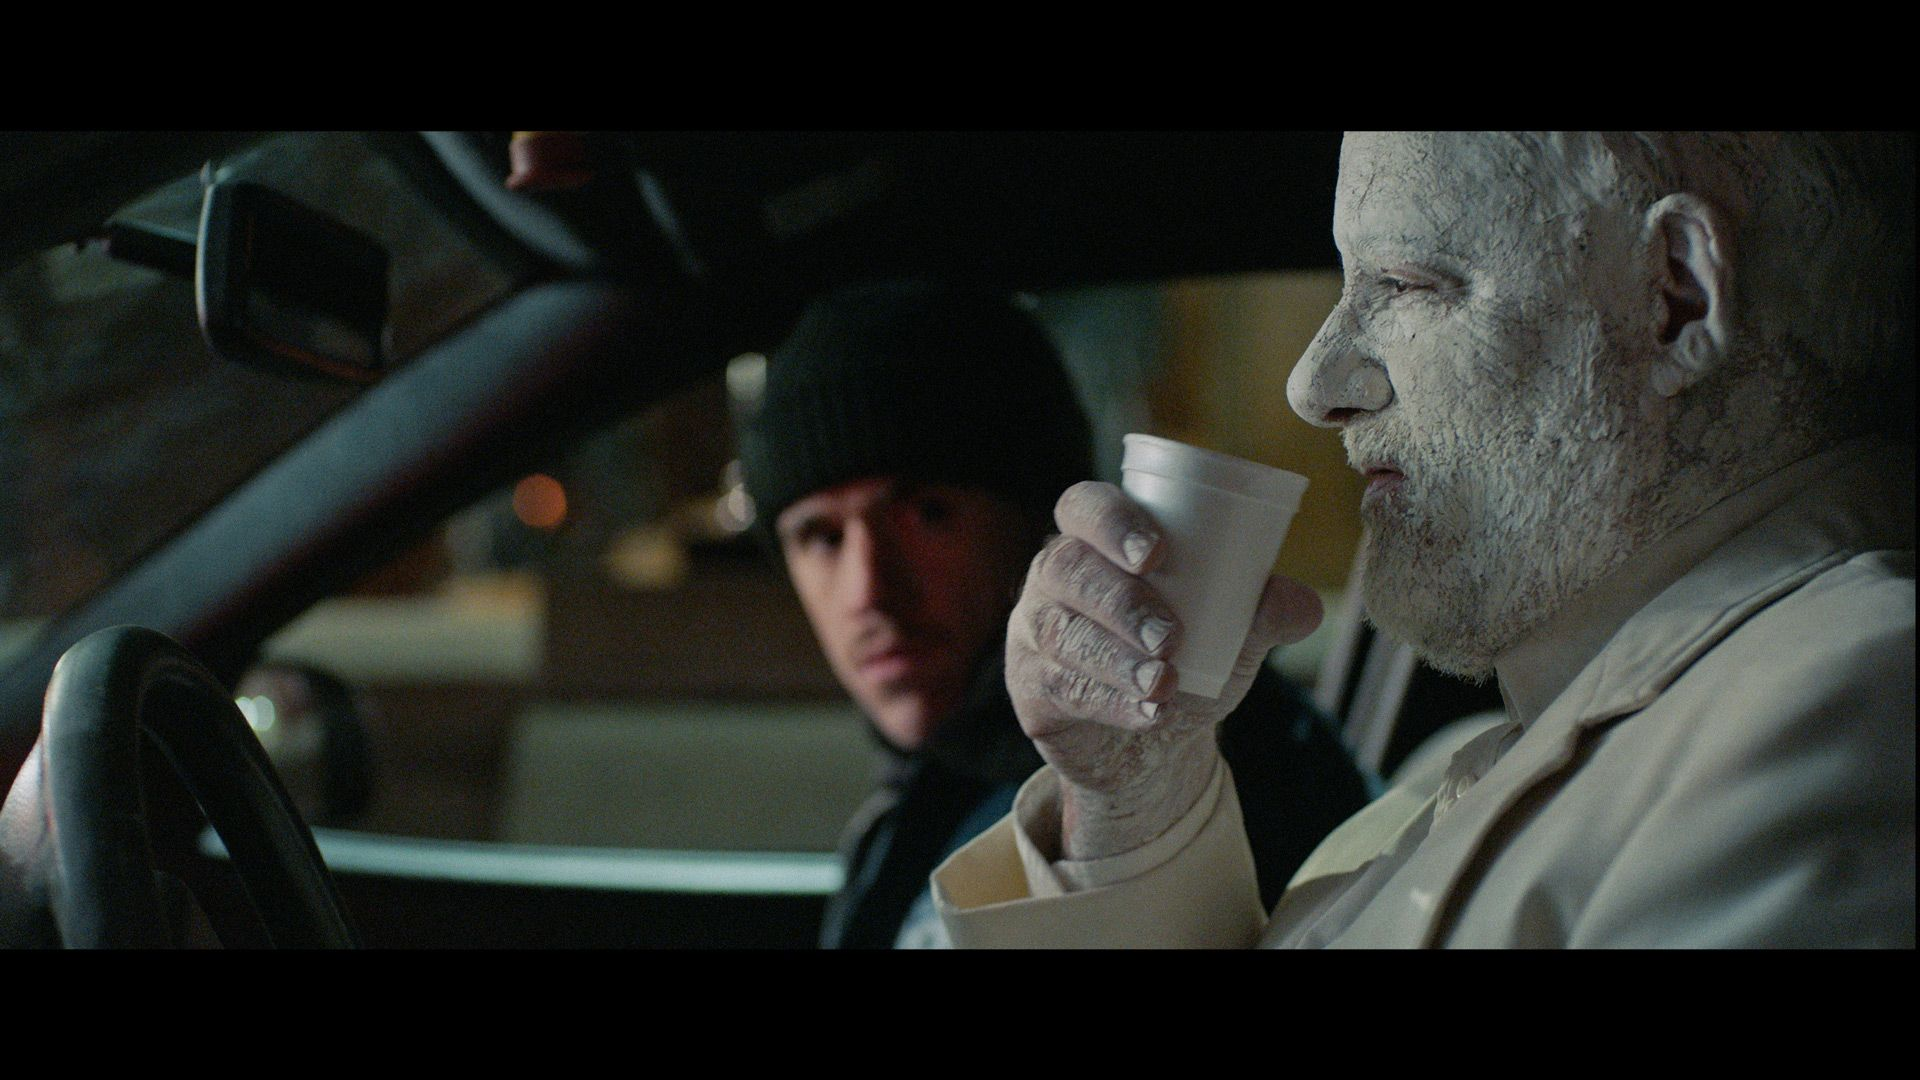 actor Emile Schneider posing as cop in a car sitting next to man completely painted white drinking a cup of water for TV series La Loi C'est La Loi filmed by Les Gamins for TV5 Unis